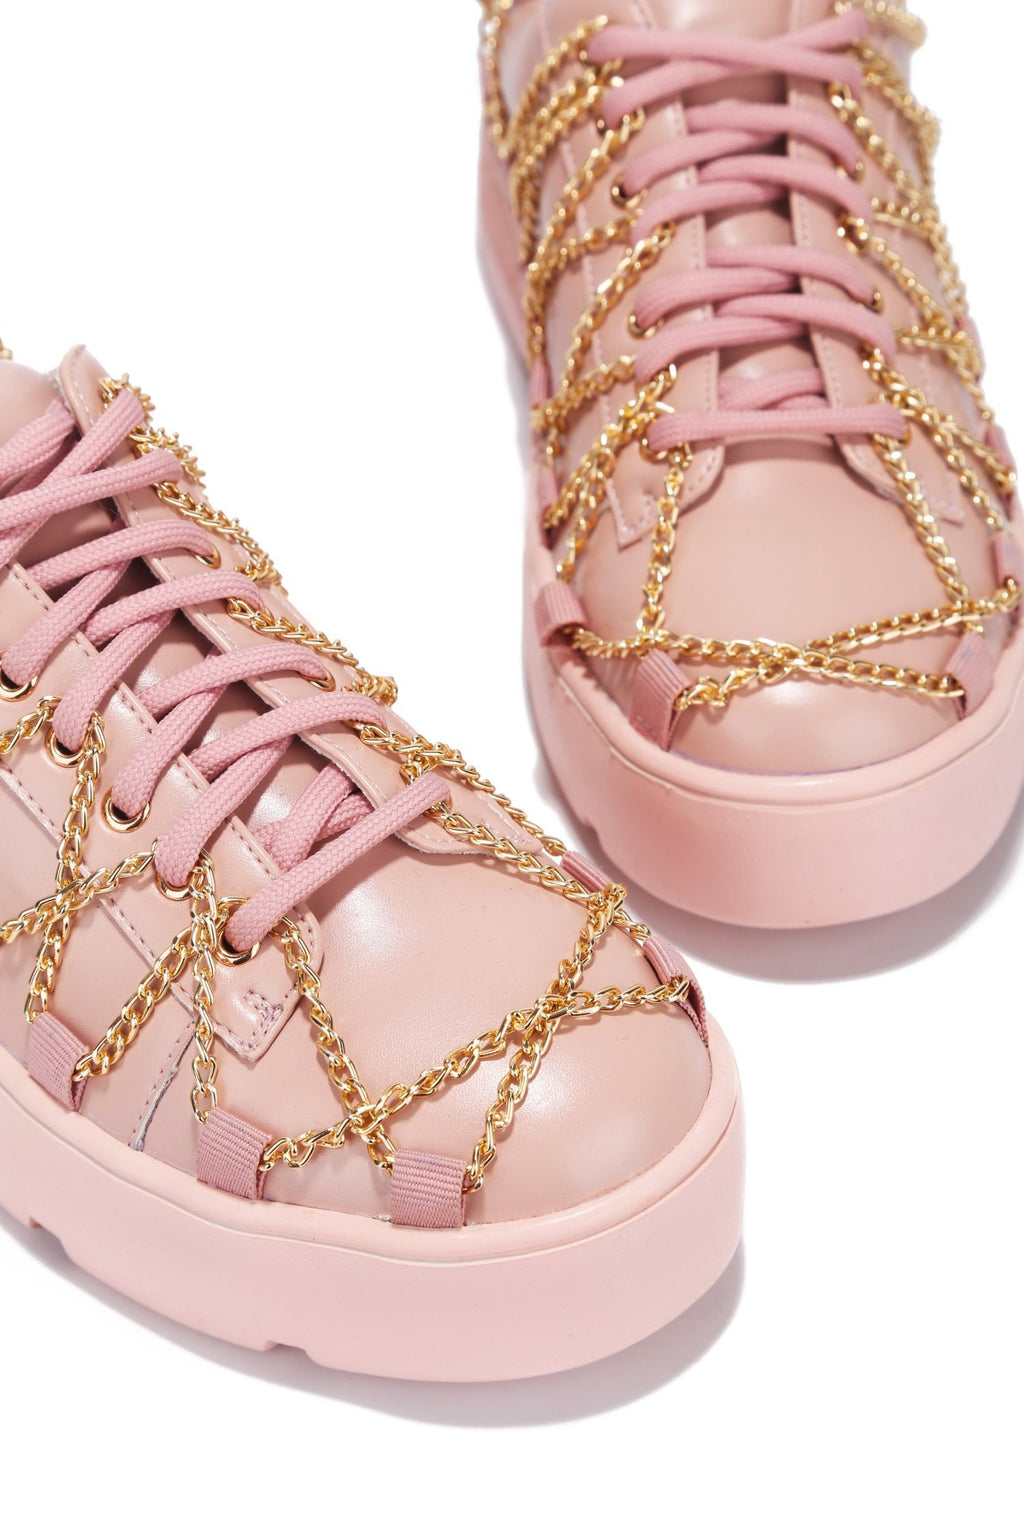 MISFIT LIVING MY DREAM SNEAKERS-BLUSH